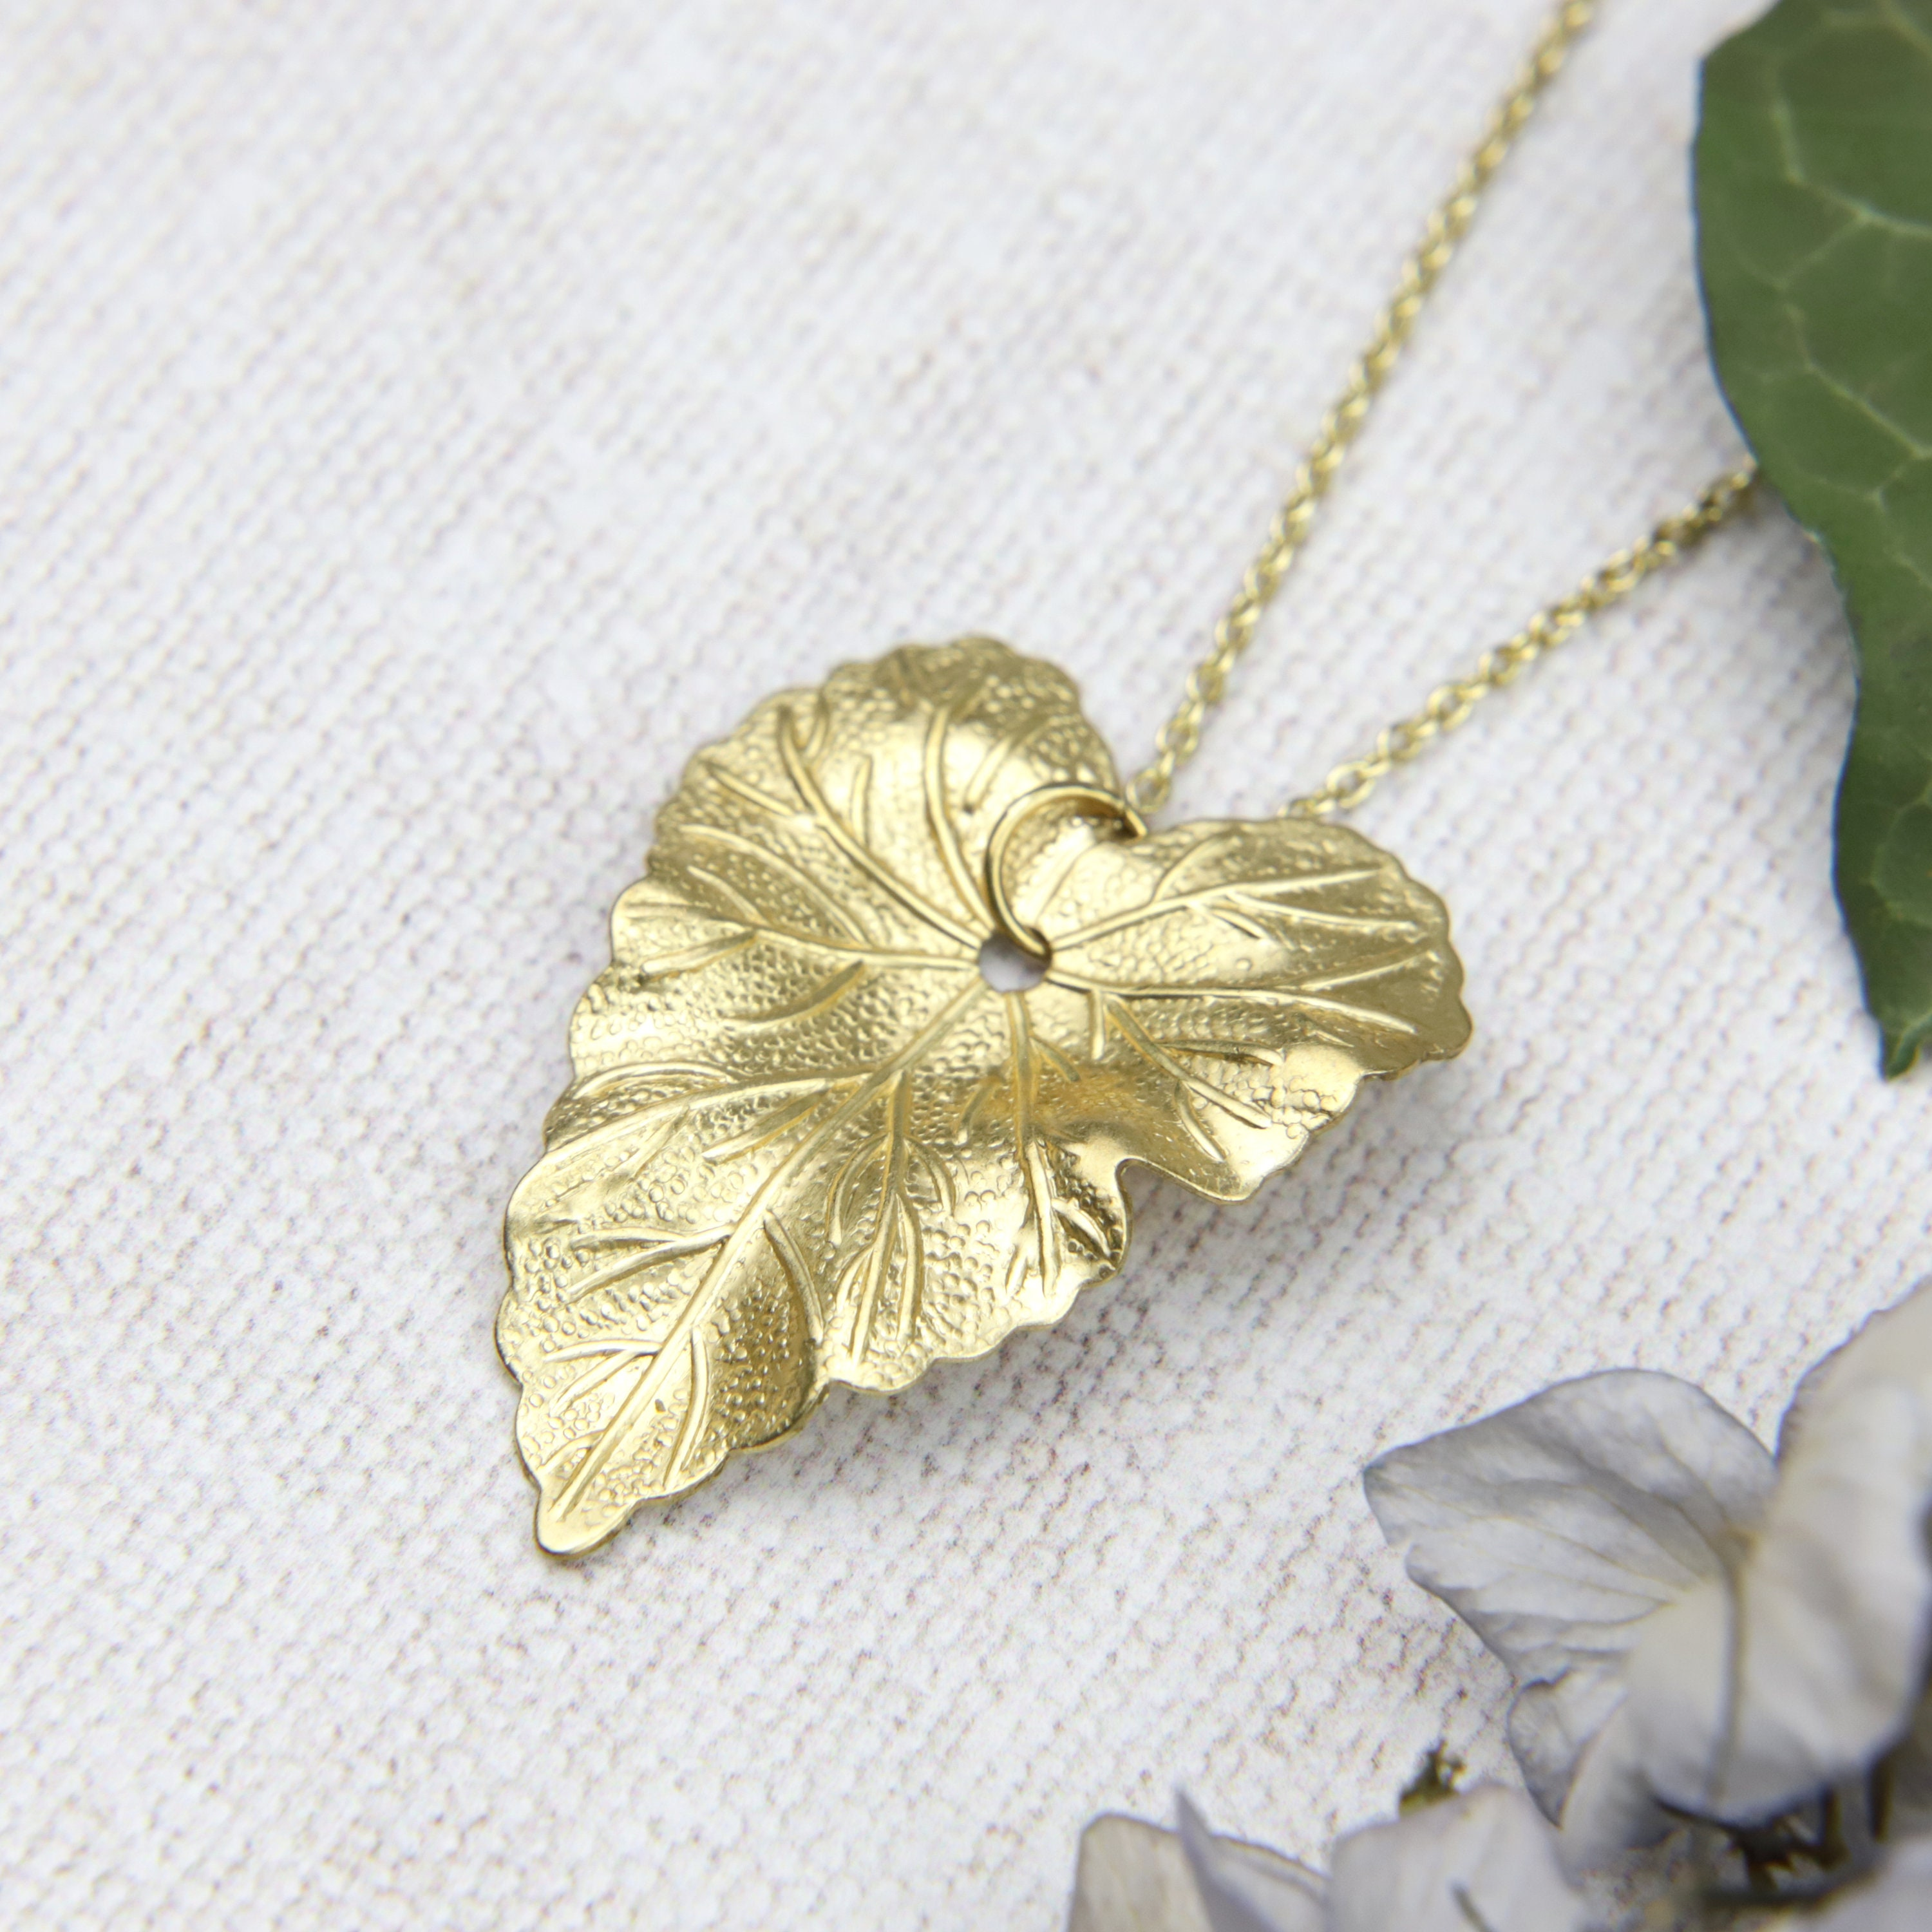 Ivy Leaf Necklace, Gold Ivy, Ivy Pendant, Gift Idea, Forest Wedding,  Woodland Wedding, Bridesmaid Jewellery, Gift for her, Autumn Necklace